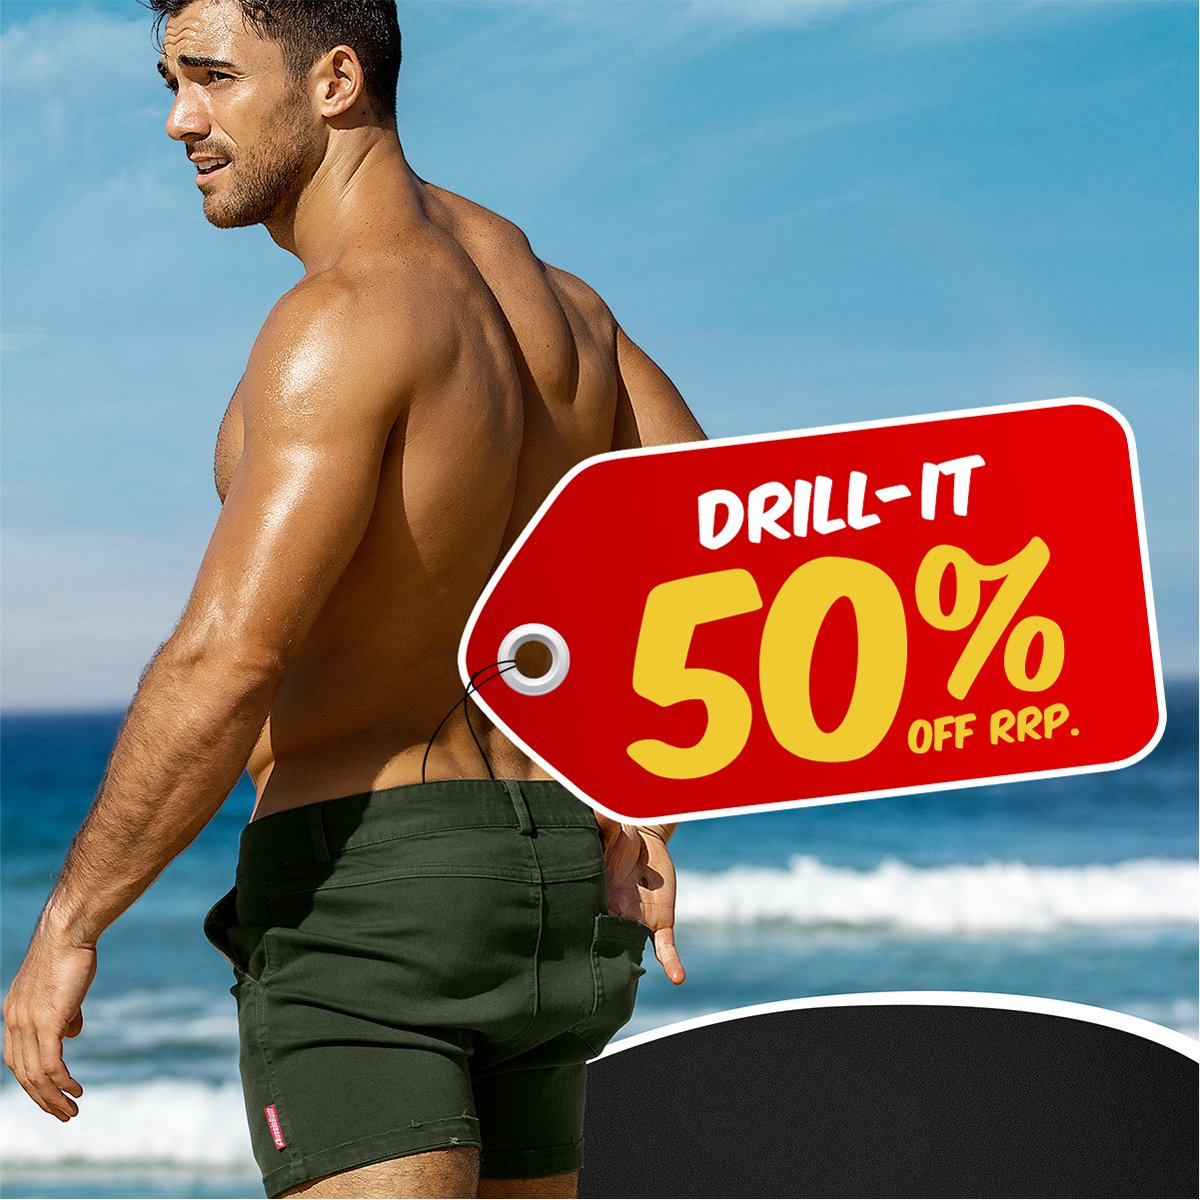 drillIT Green Homepage Image